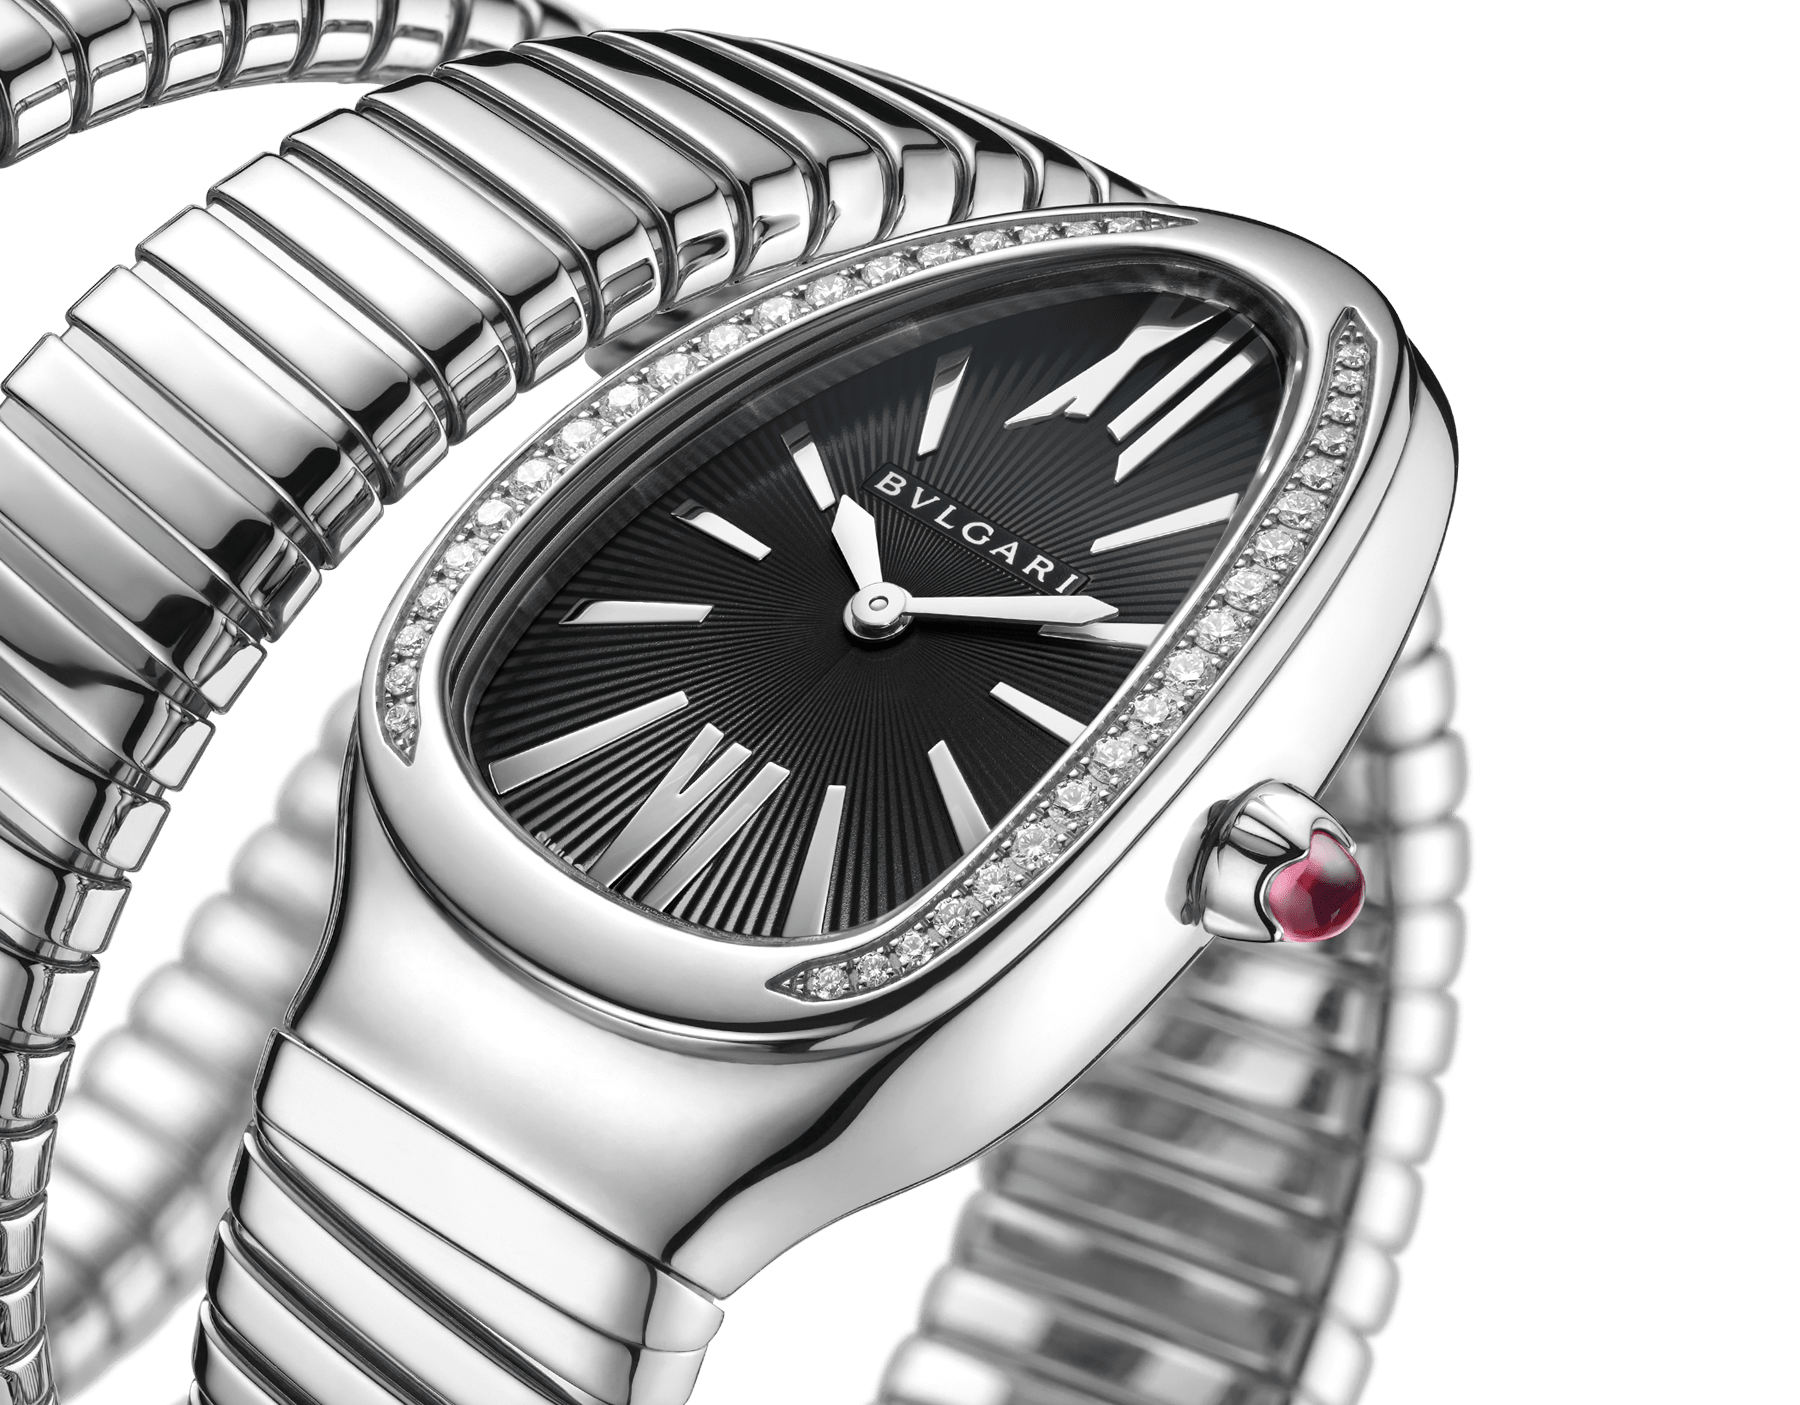 Serpenti Tubogas double spiral watch with stainless steel case and bracelet, bezel set with brilliant-cut diamonds and black dial with guilloché soleil treatment. Water-resistant up to 30 metres. Large size 103433 image 2